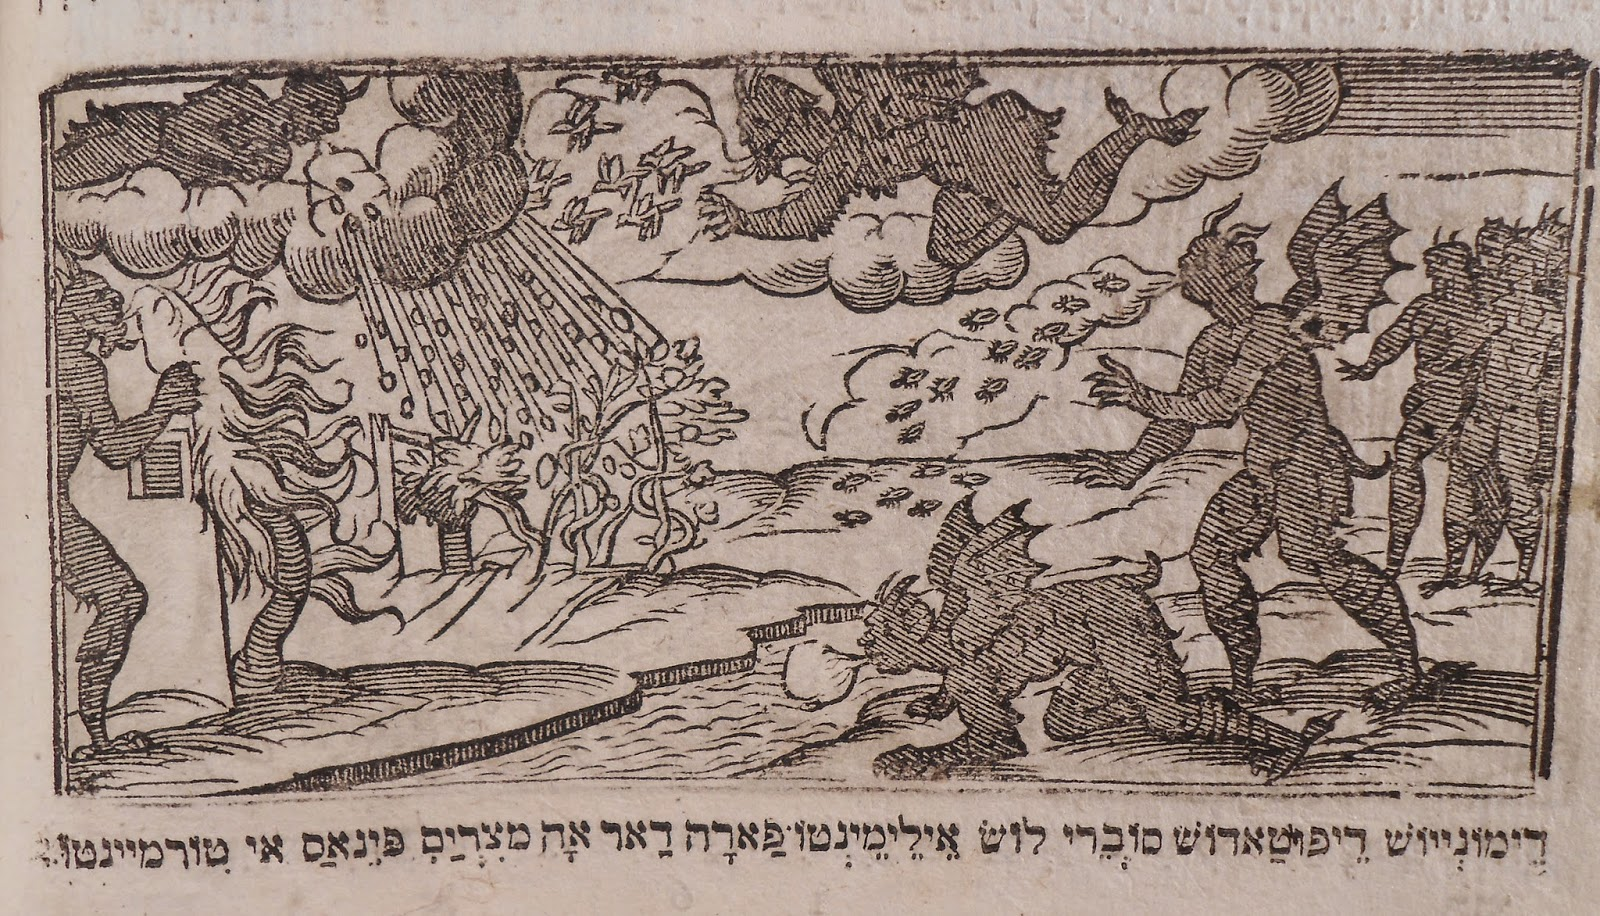 A woodcut showing a series of devil-like figures releasing plagues.